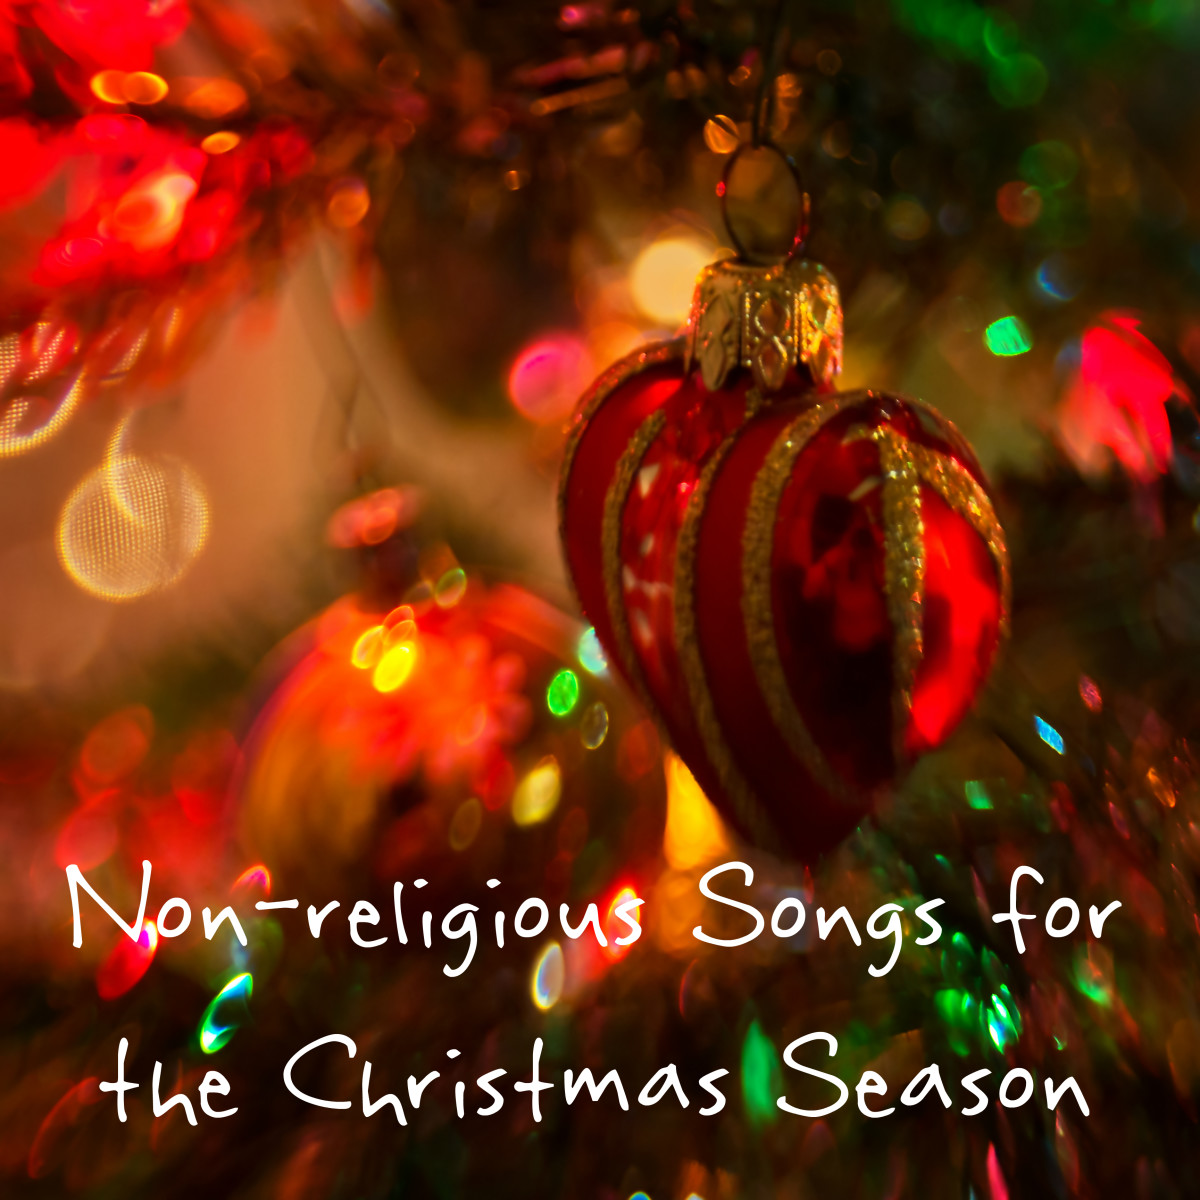 Having an office party or other event and need a playlist of Christmas songs that aren